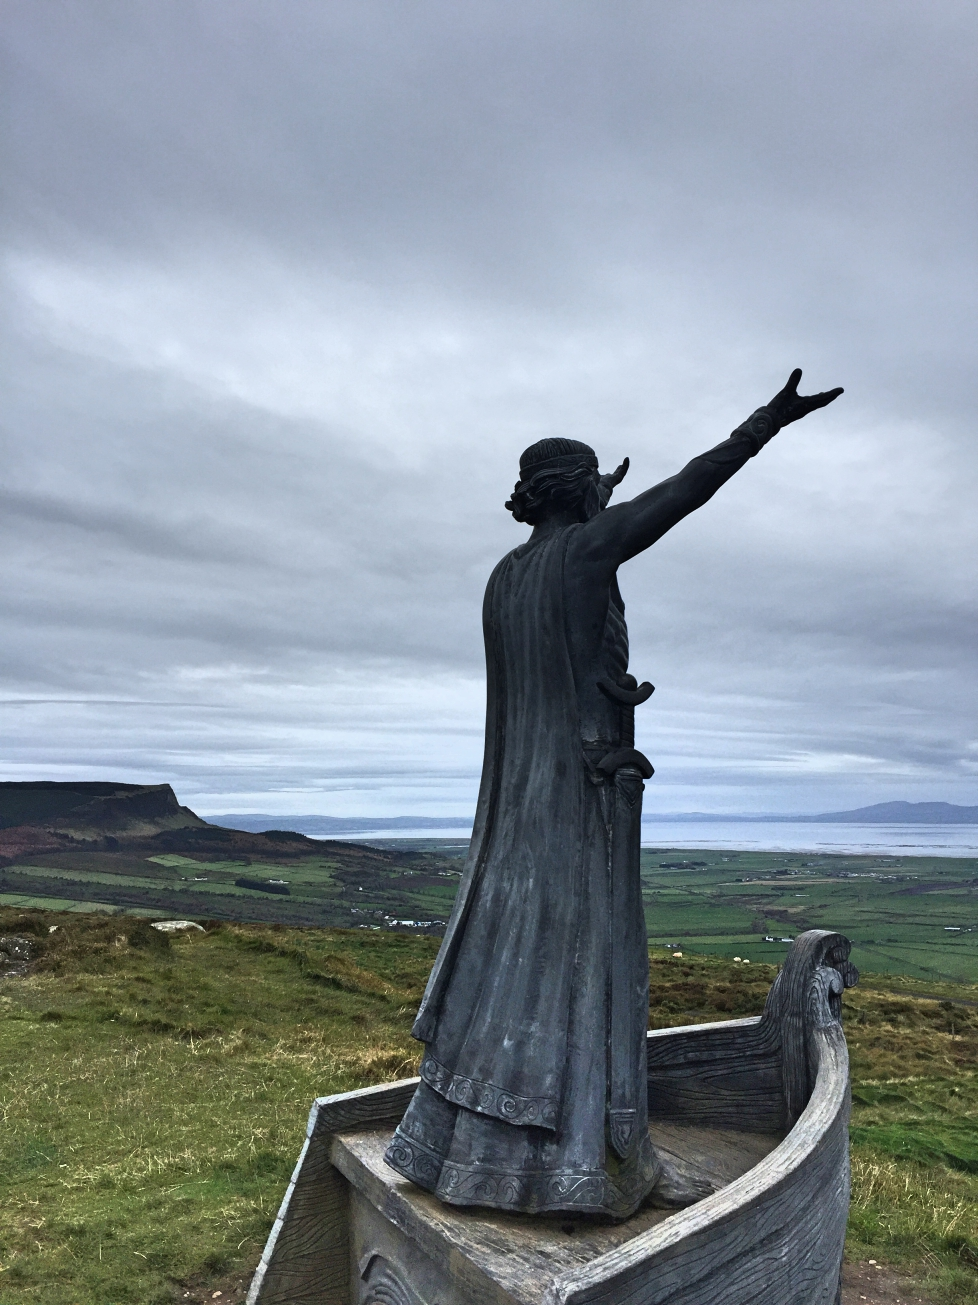 limavady_binevenagh_gortmore_view__niexplorer_ni_explorer_northern_ireland (6).jpg